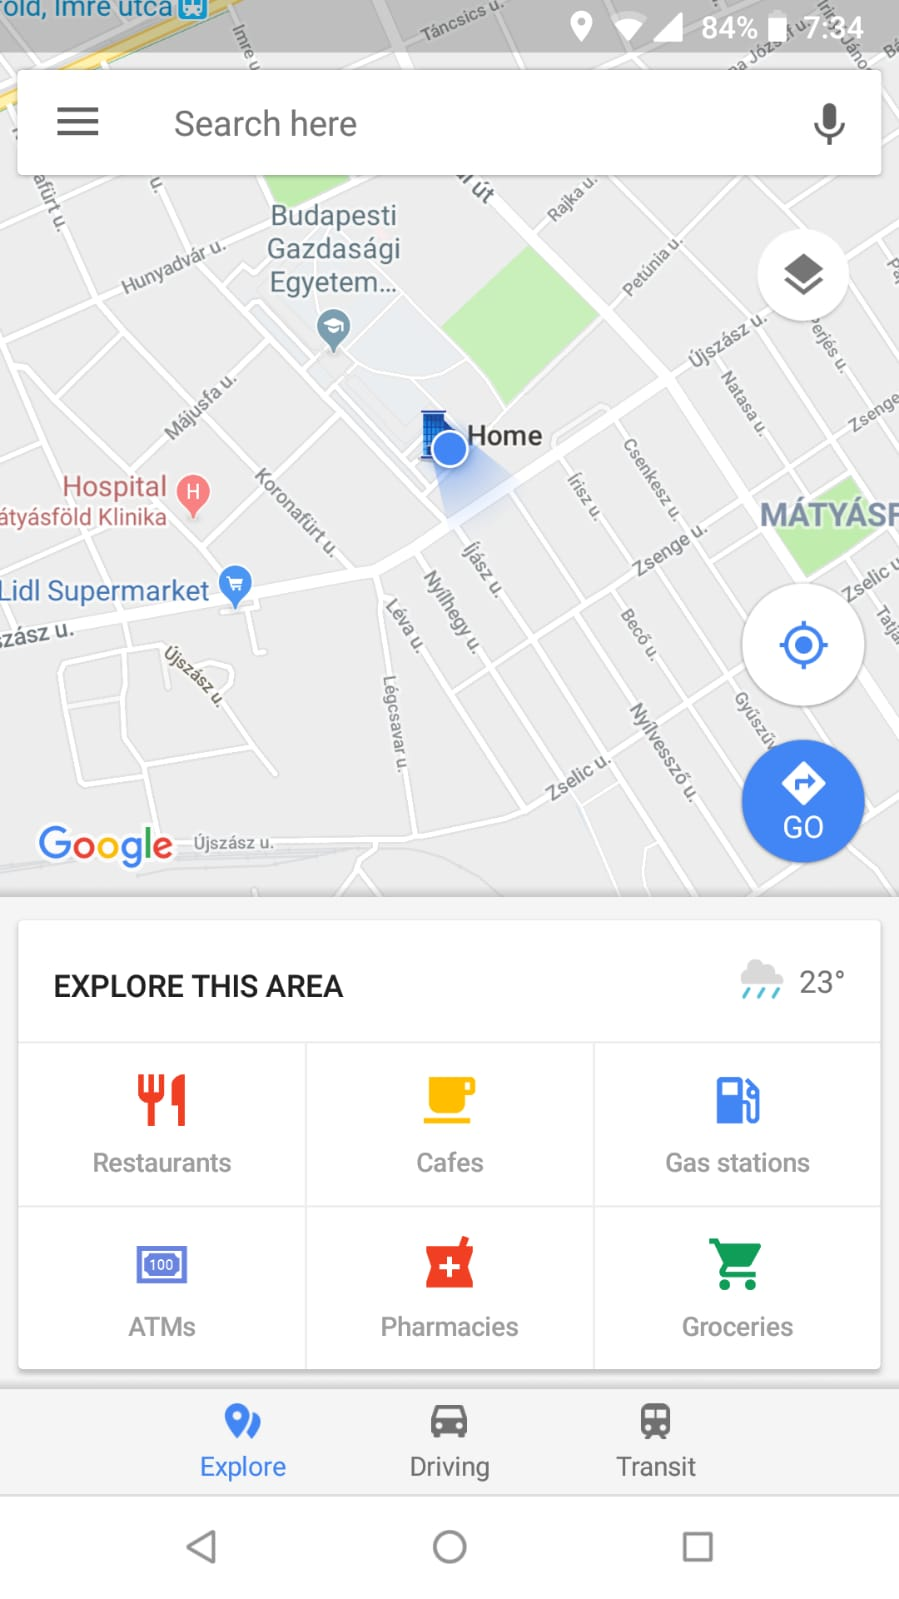 Google Maps: what is it? And how does it work?